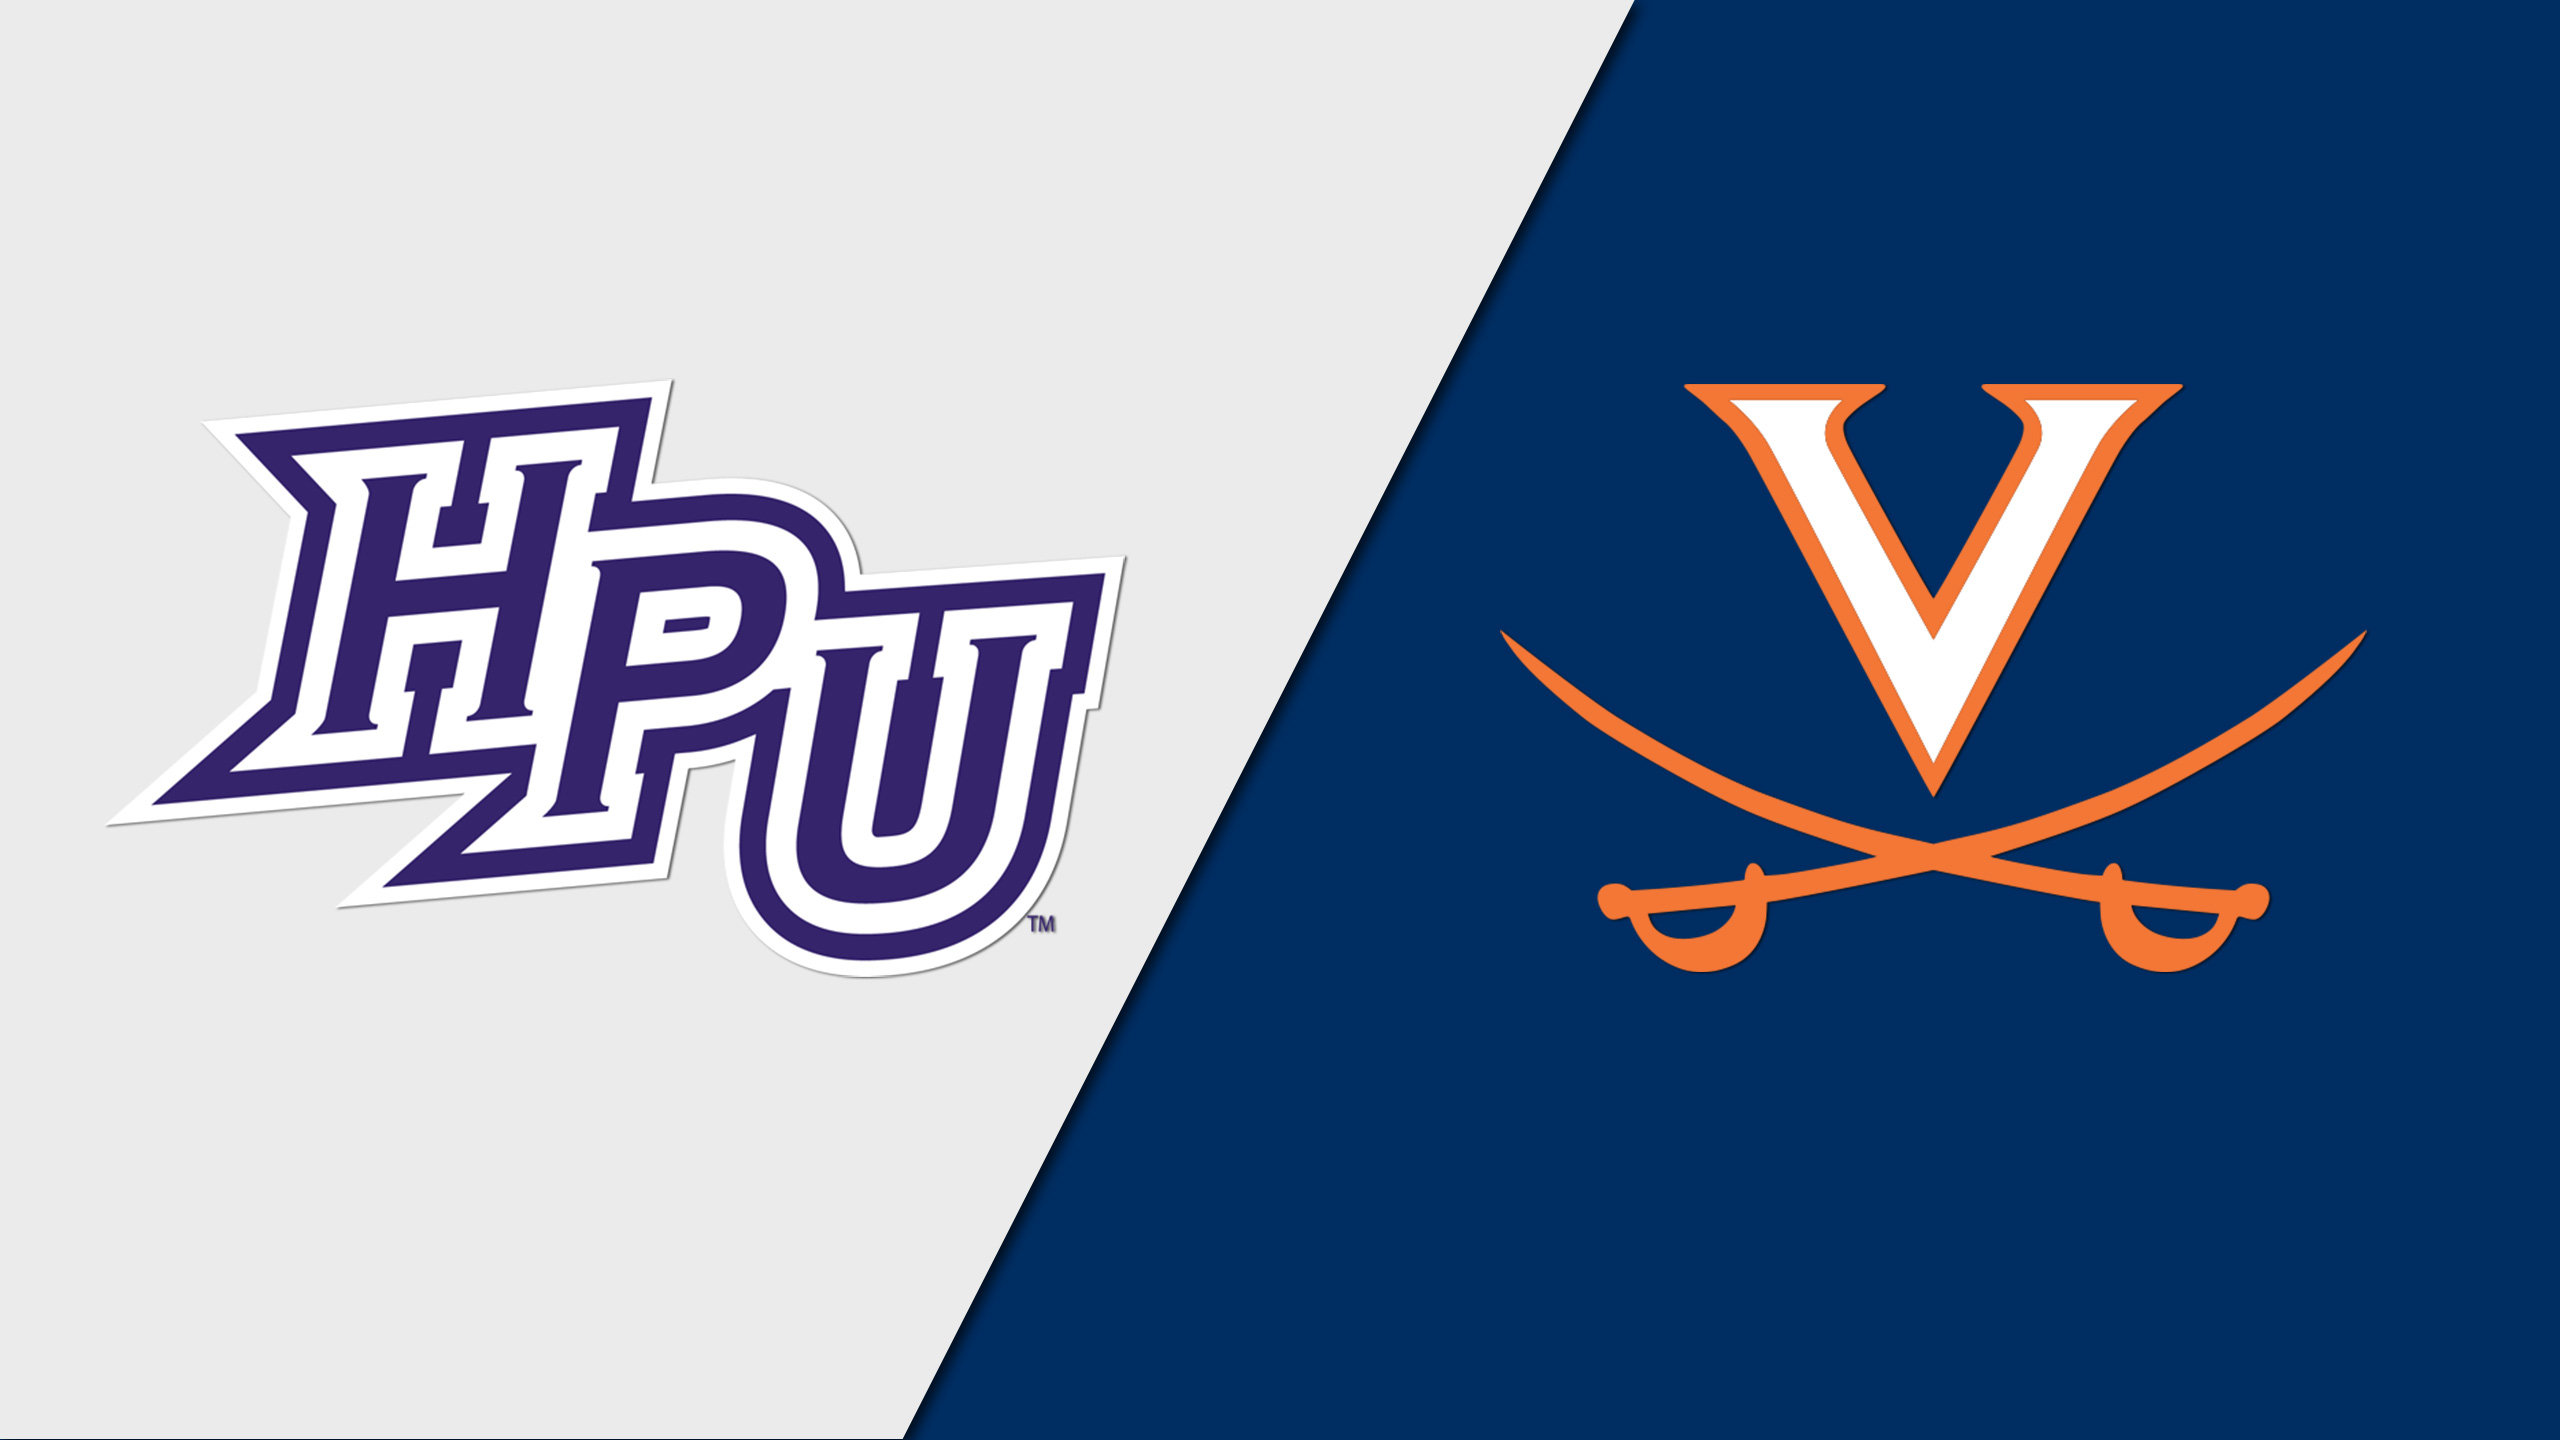 #11 High Point vs. #12 Virginia (M Lacrosse)